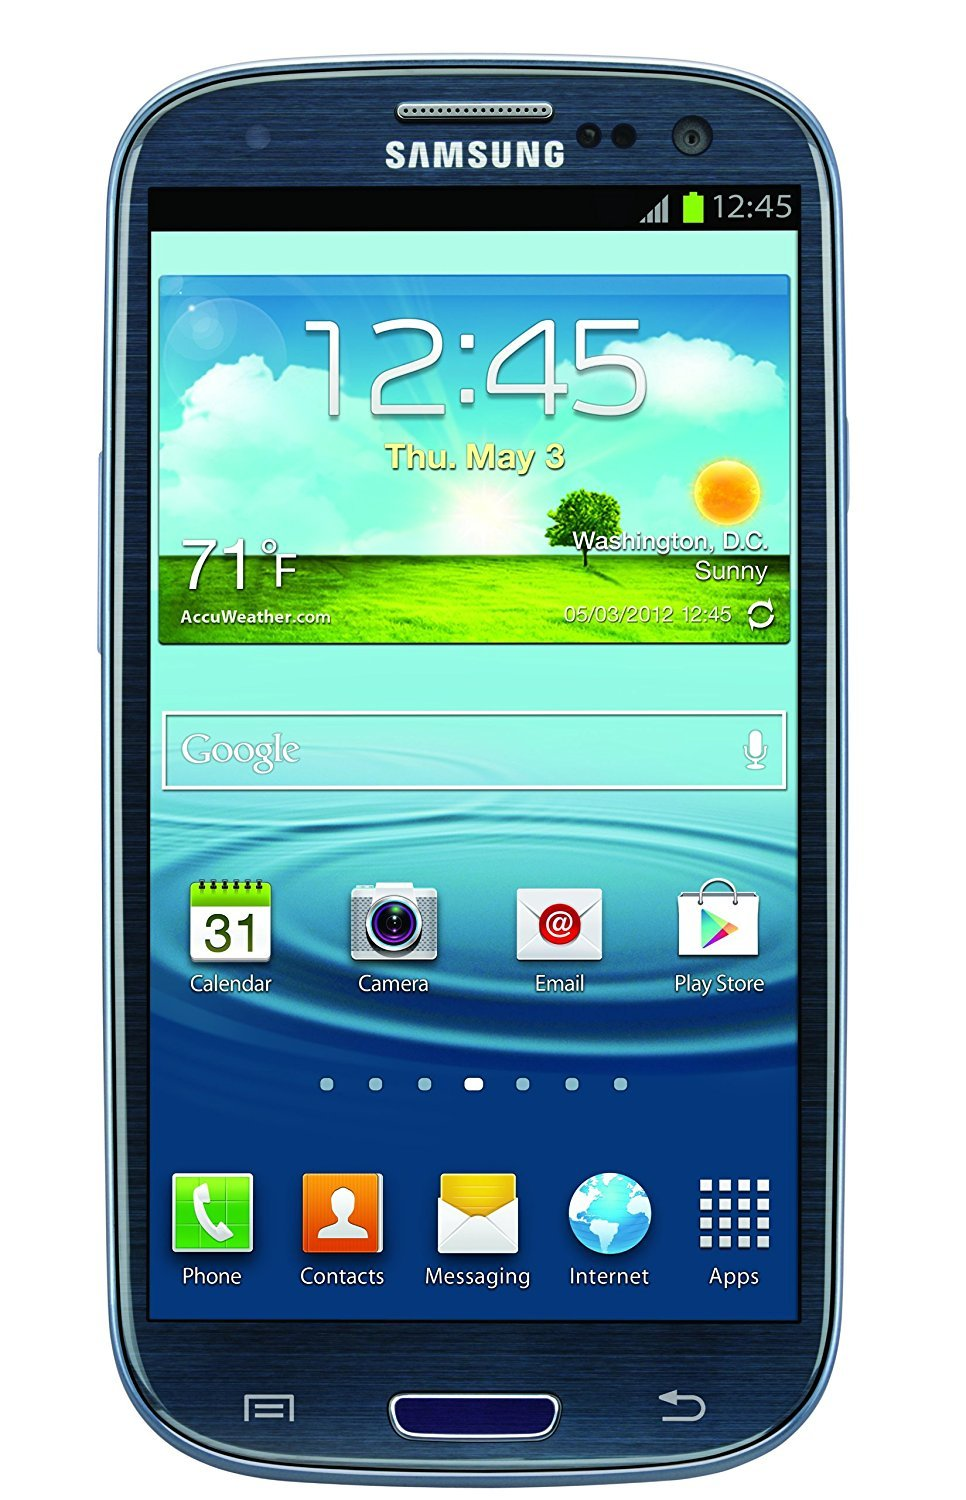 samsung galaxy s iii sgh i747 16gb gsm unlocked lte android smartphone blue amazon. Black Bedroom Furniture Sets. Home Design Ideas